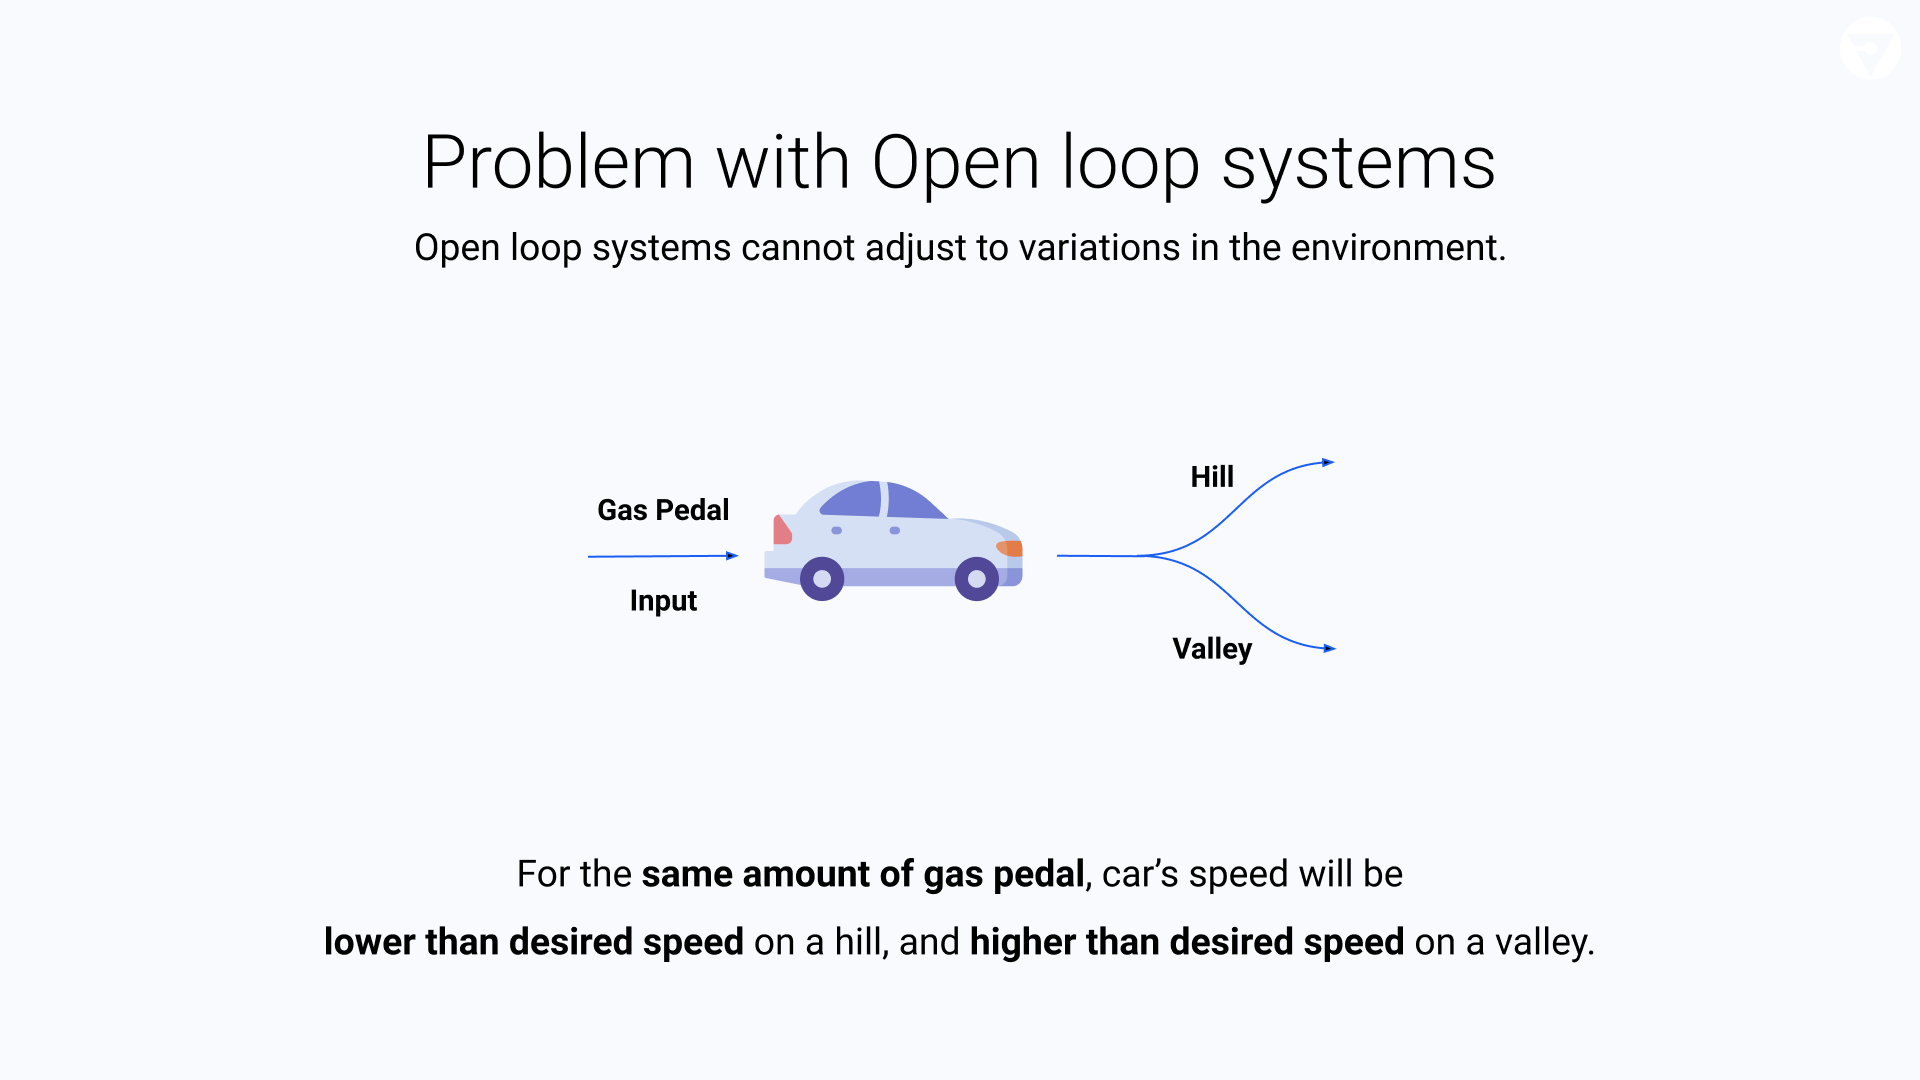 However, open-loop systems cannot adjust to variations in the environment.